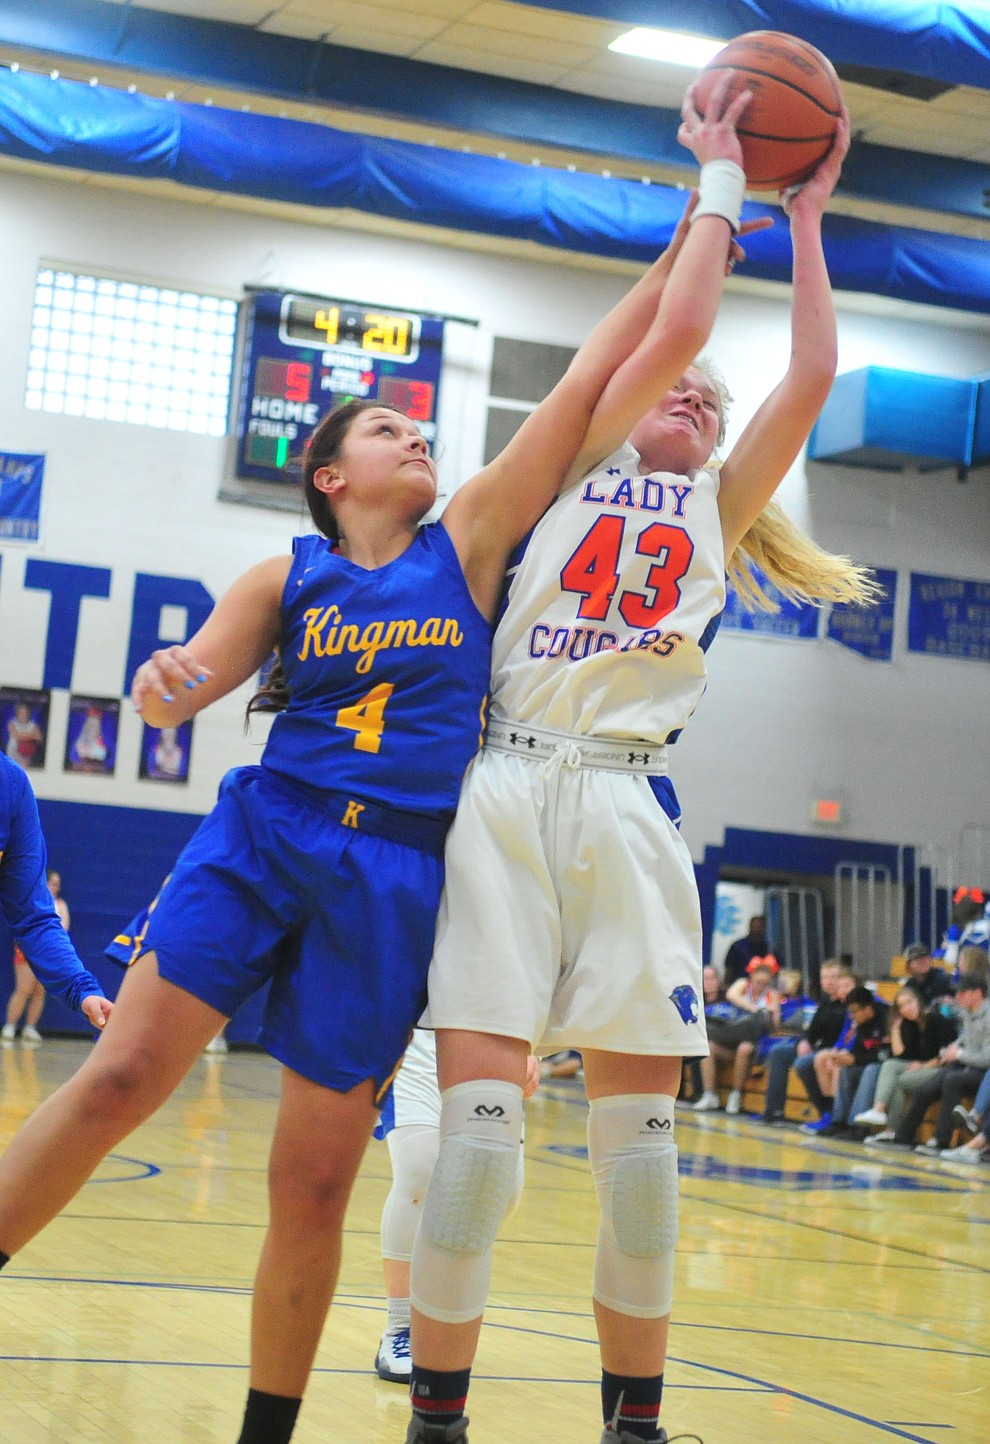 Chino Valley's Shayne Andrews gets fouled while shooting as they face the Kingman Bulldogs Thursday, Jan. 24, 2019 in Chino Valley. (Les Stukenberg/Courier).